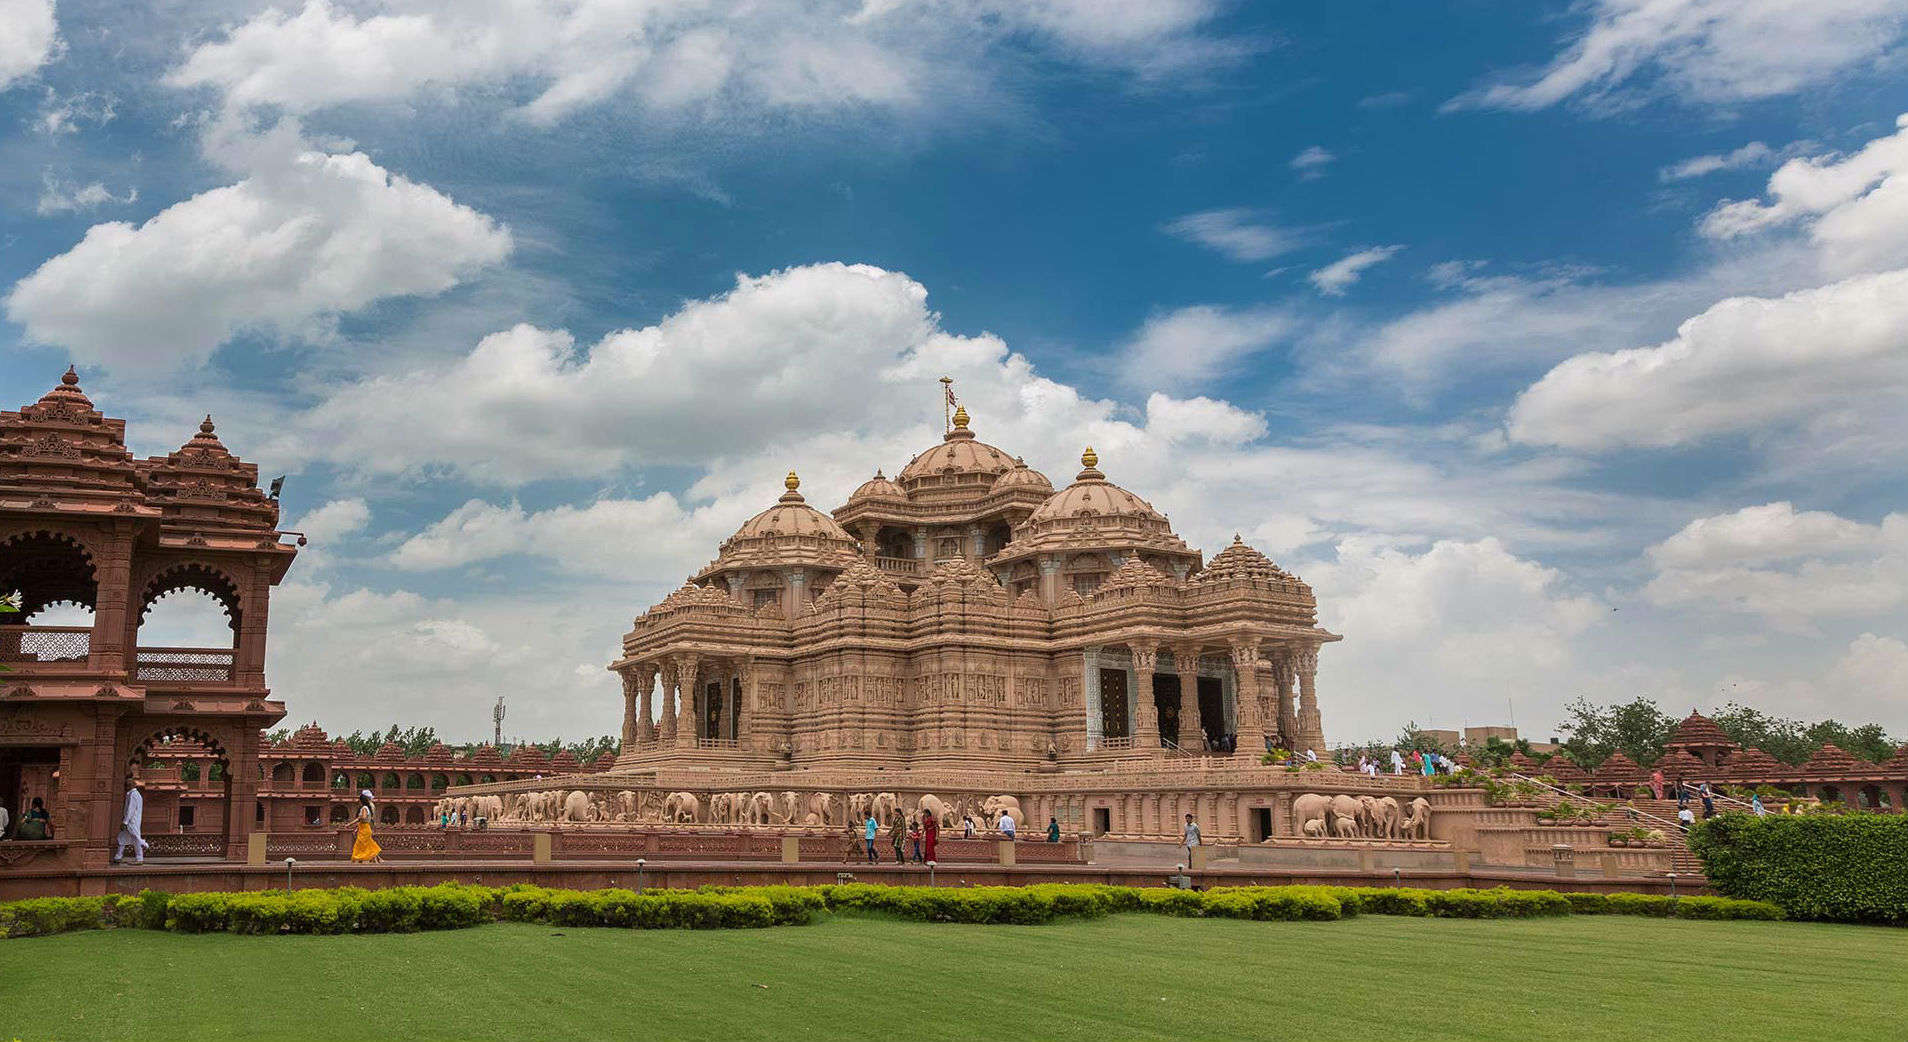 Did you know Akshardham Temple has designs modelled on Ajanta and Ellora caves?